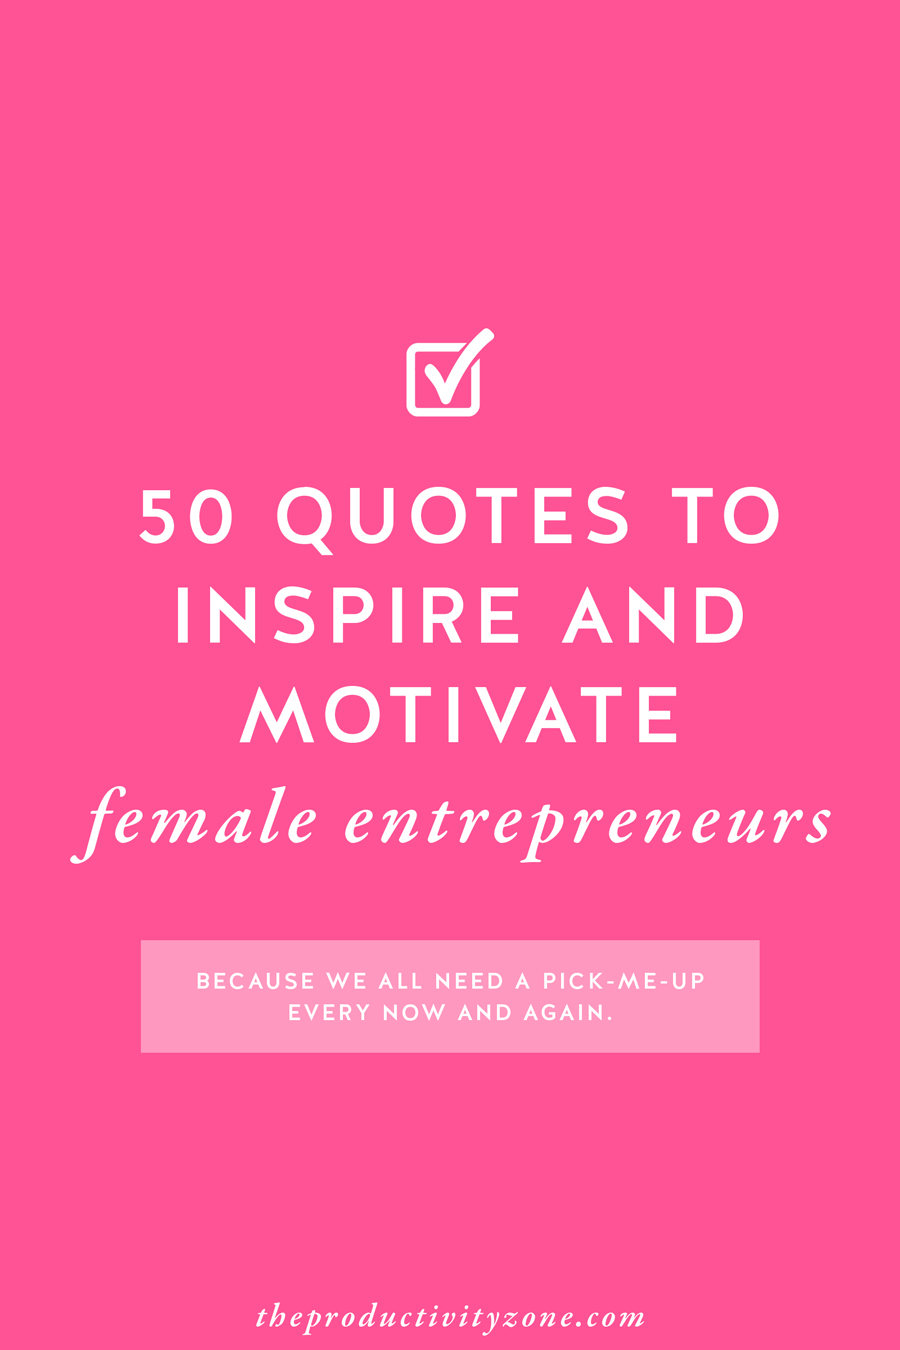 Work Life Balance Quote 50 Quotes To Inspire & Motivate Female Entrepreneurs